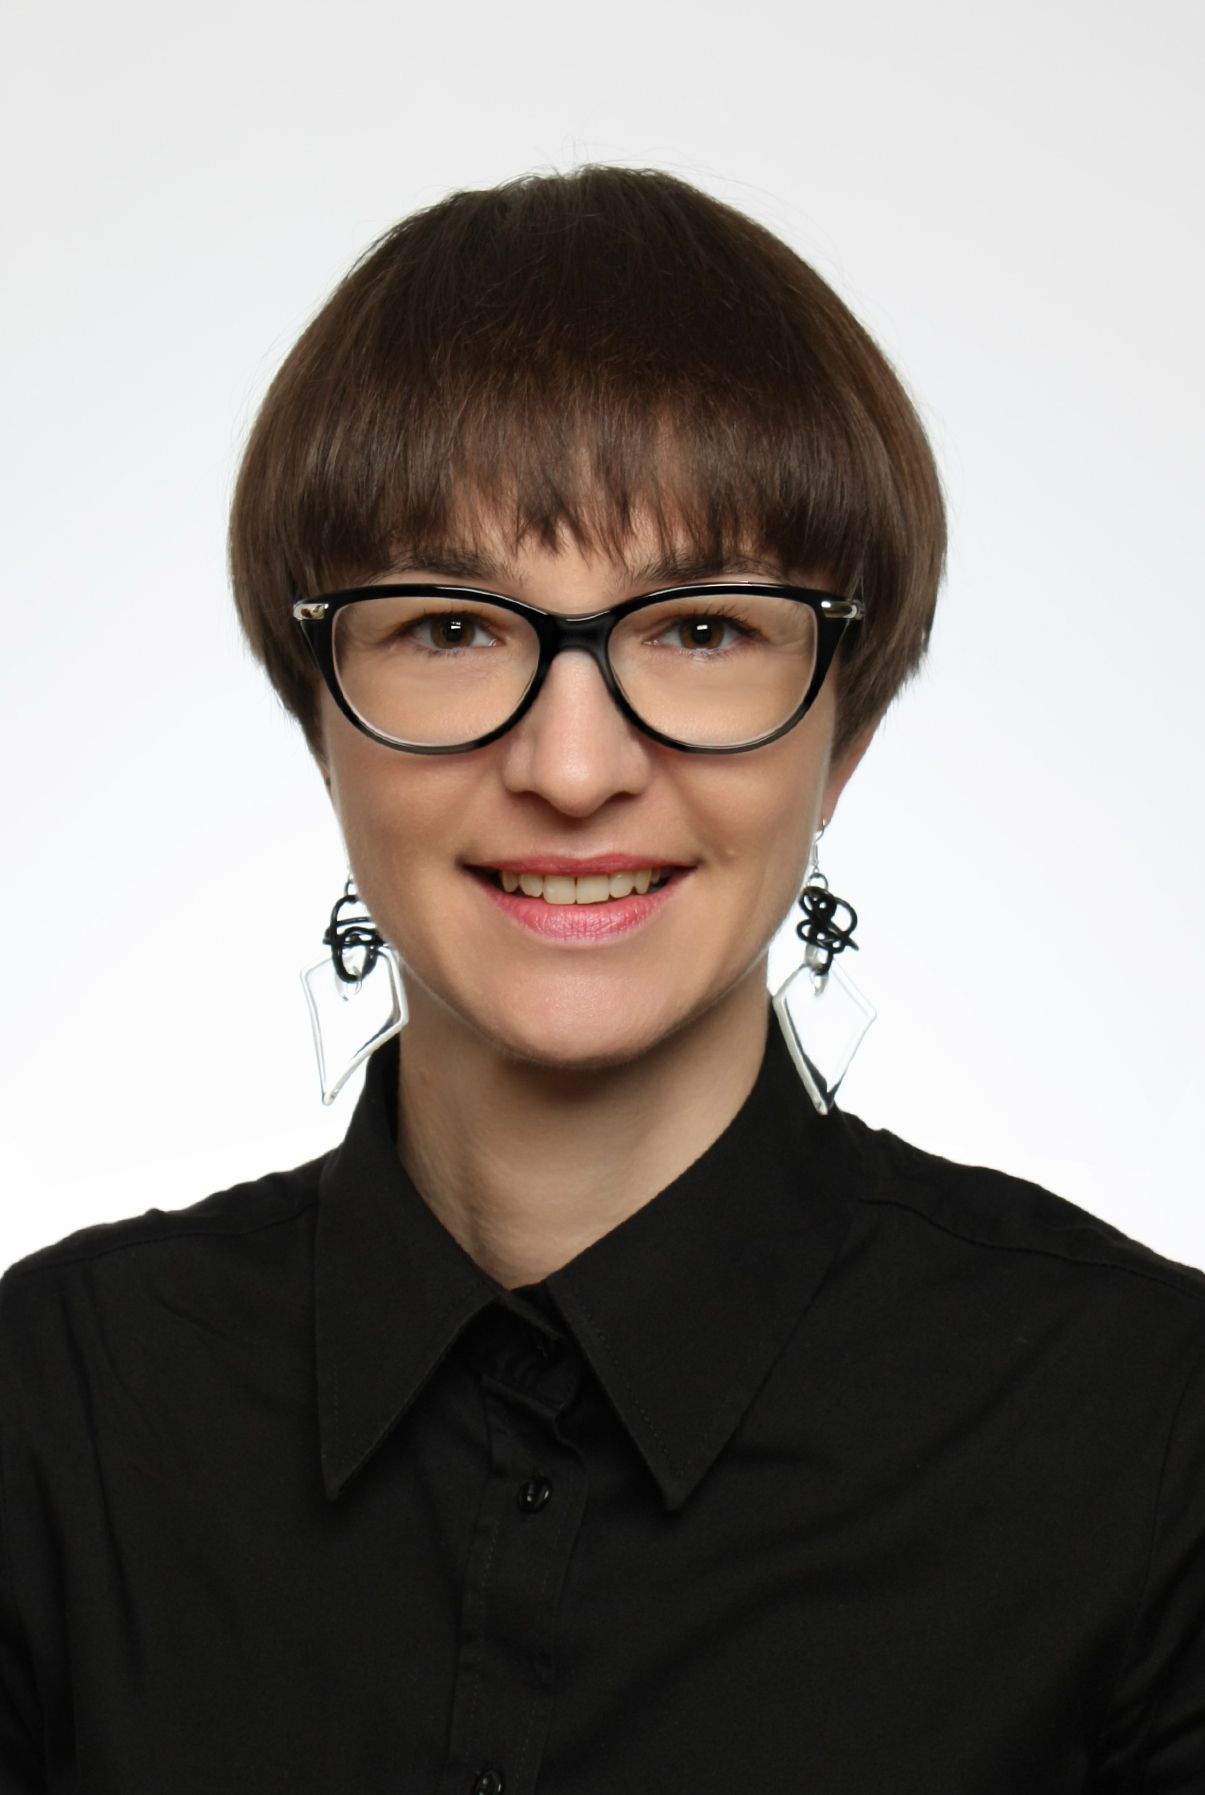 Sara Rožman, EUSA Education and Development Manager